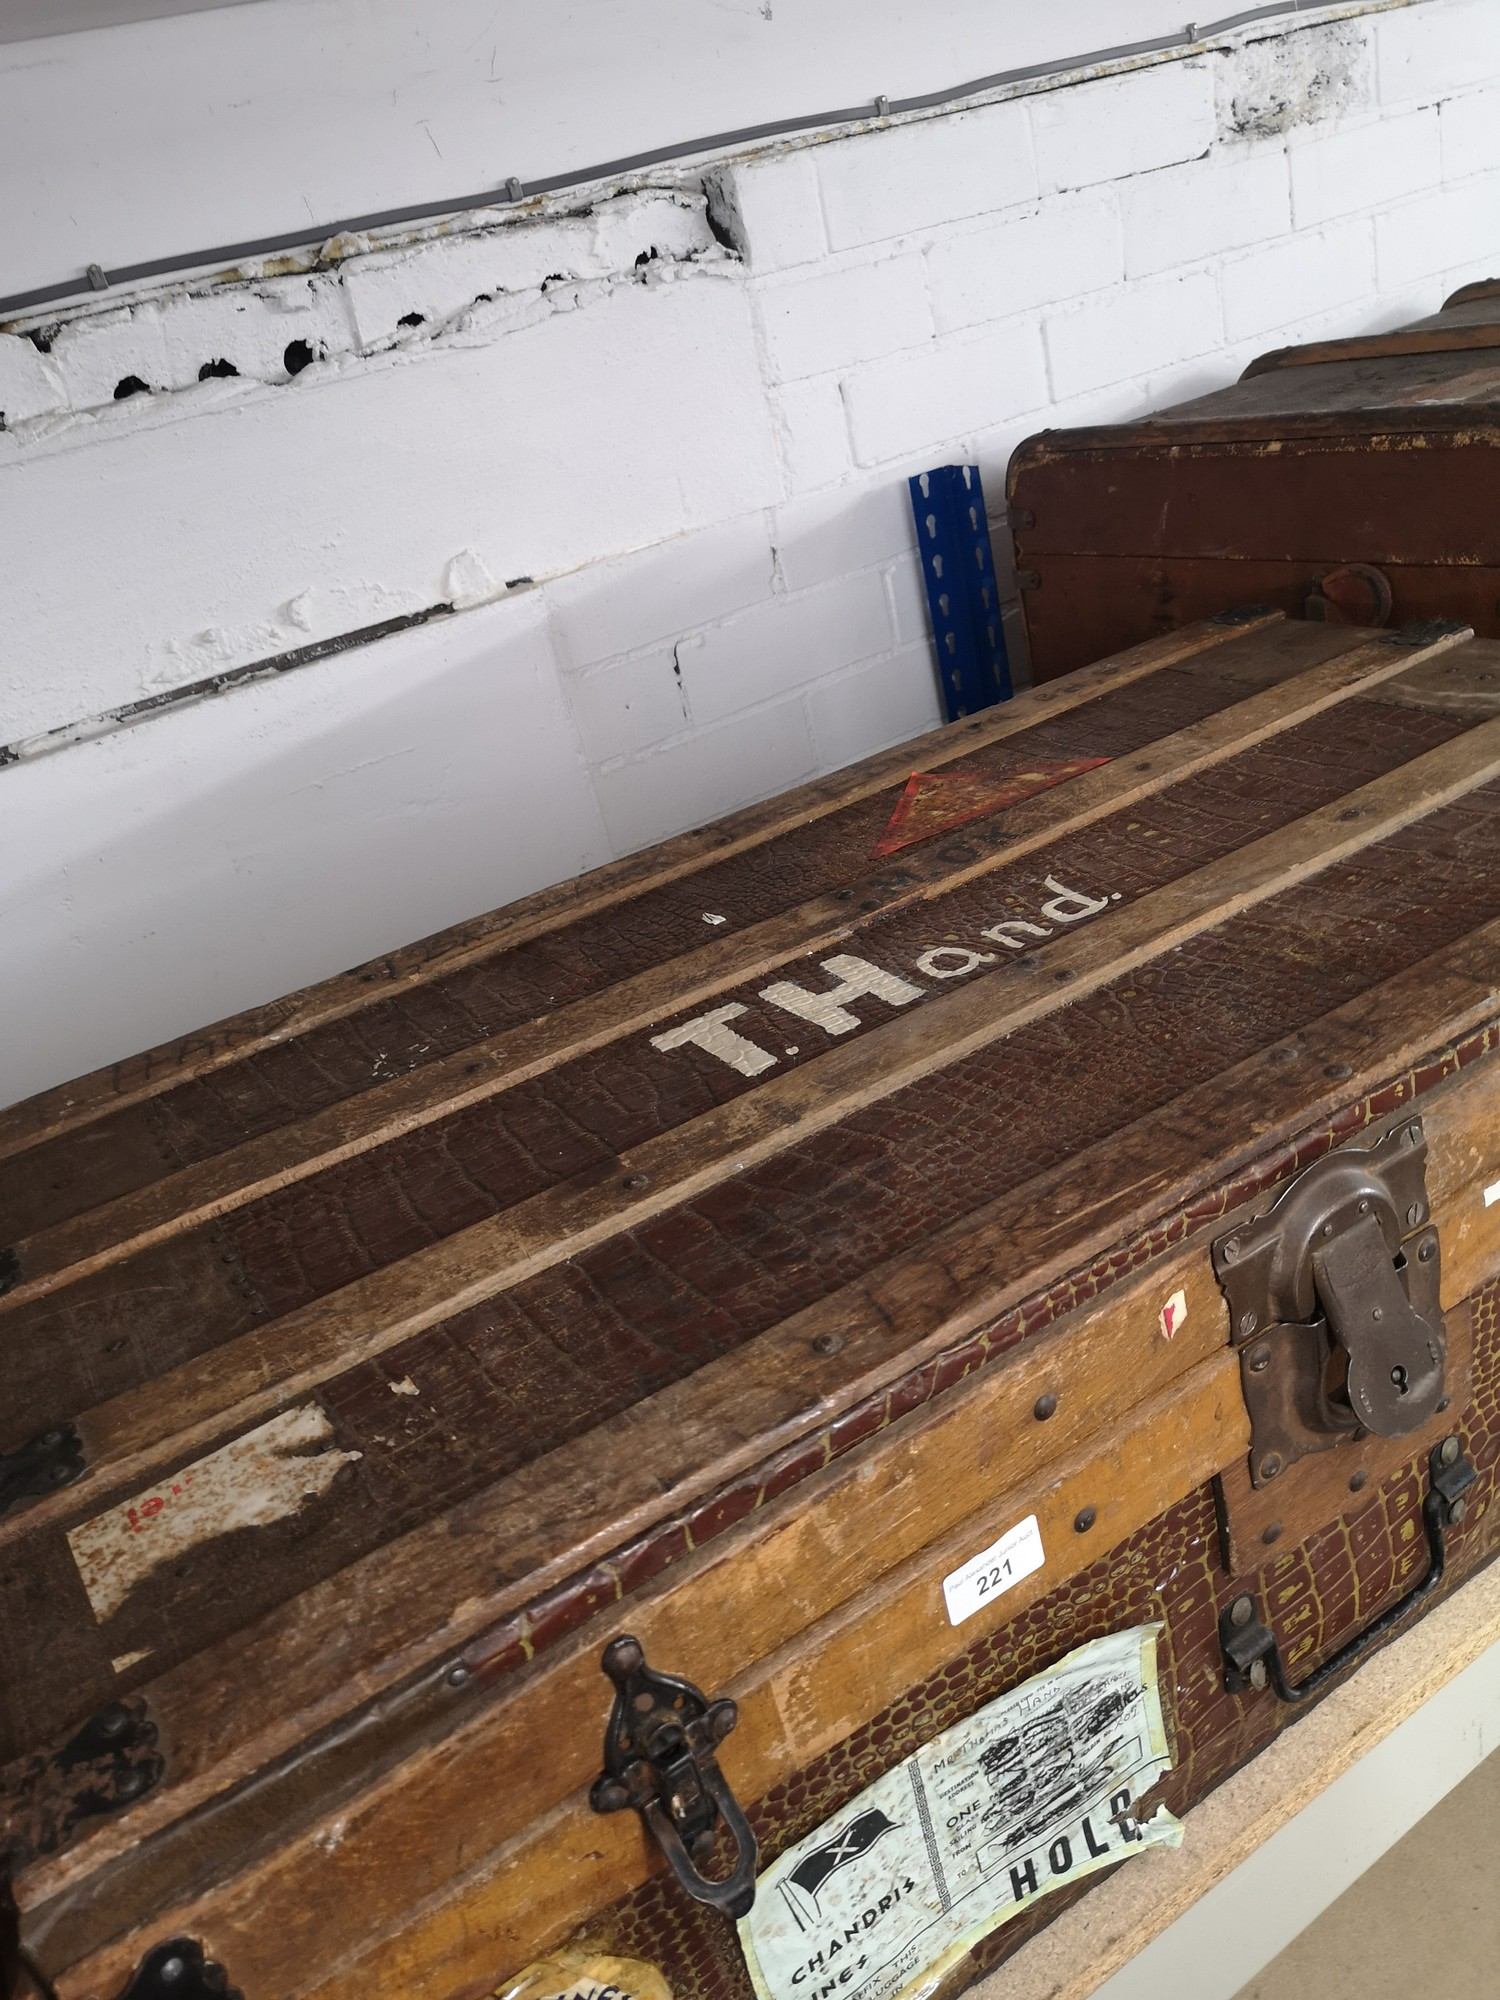 1900s wooden bound trunk with interior design - Image 3 of 4